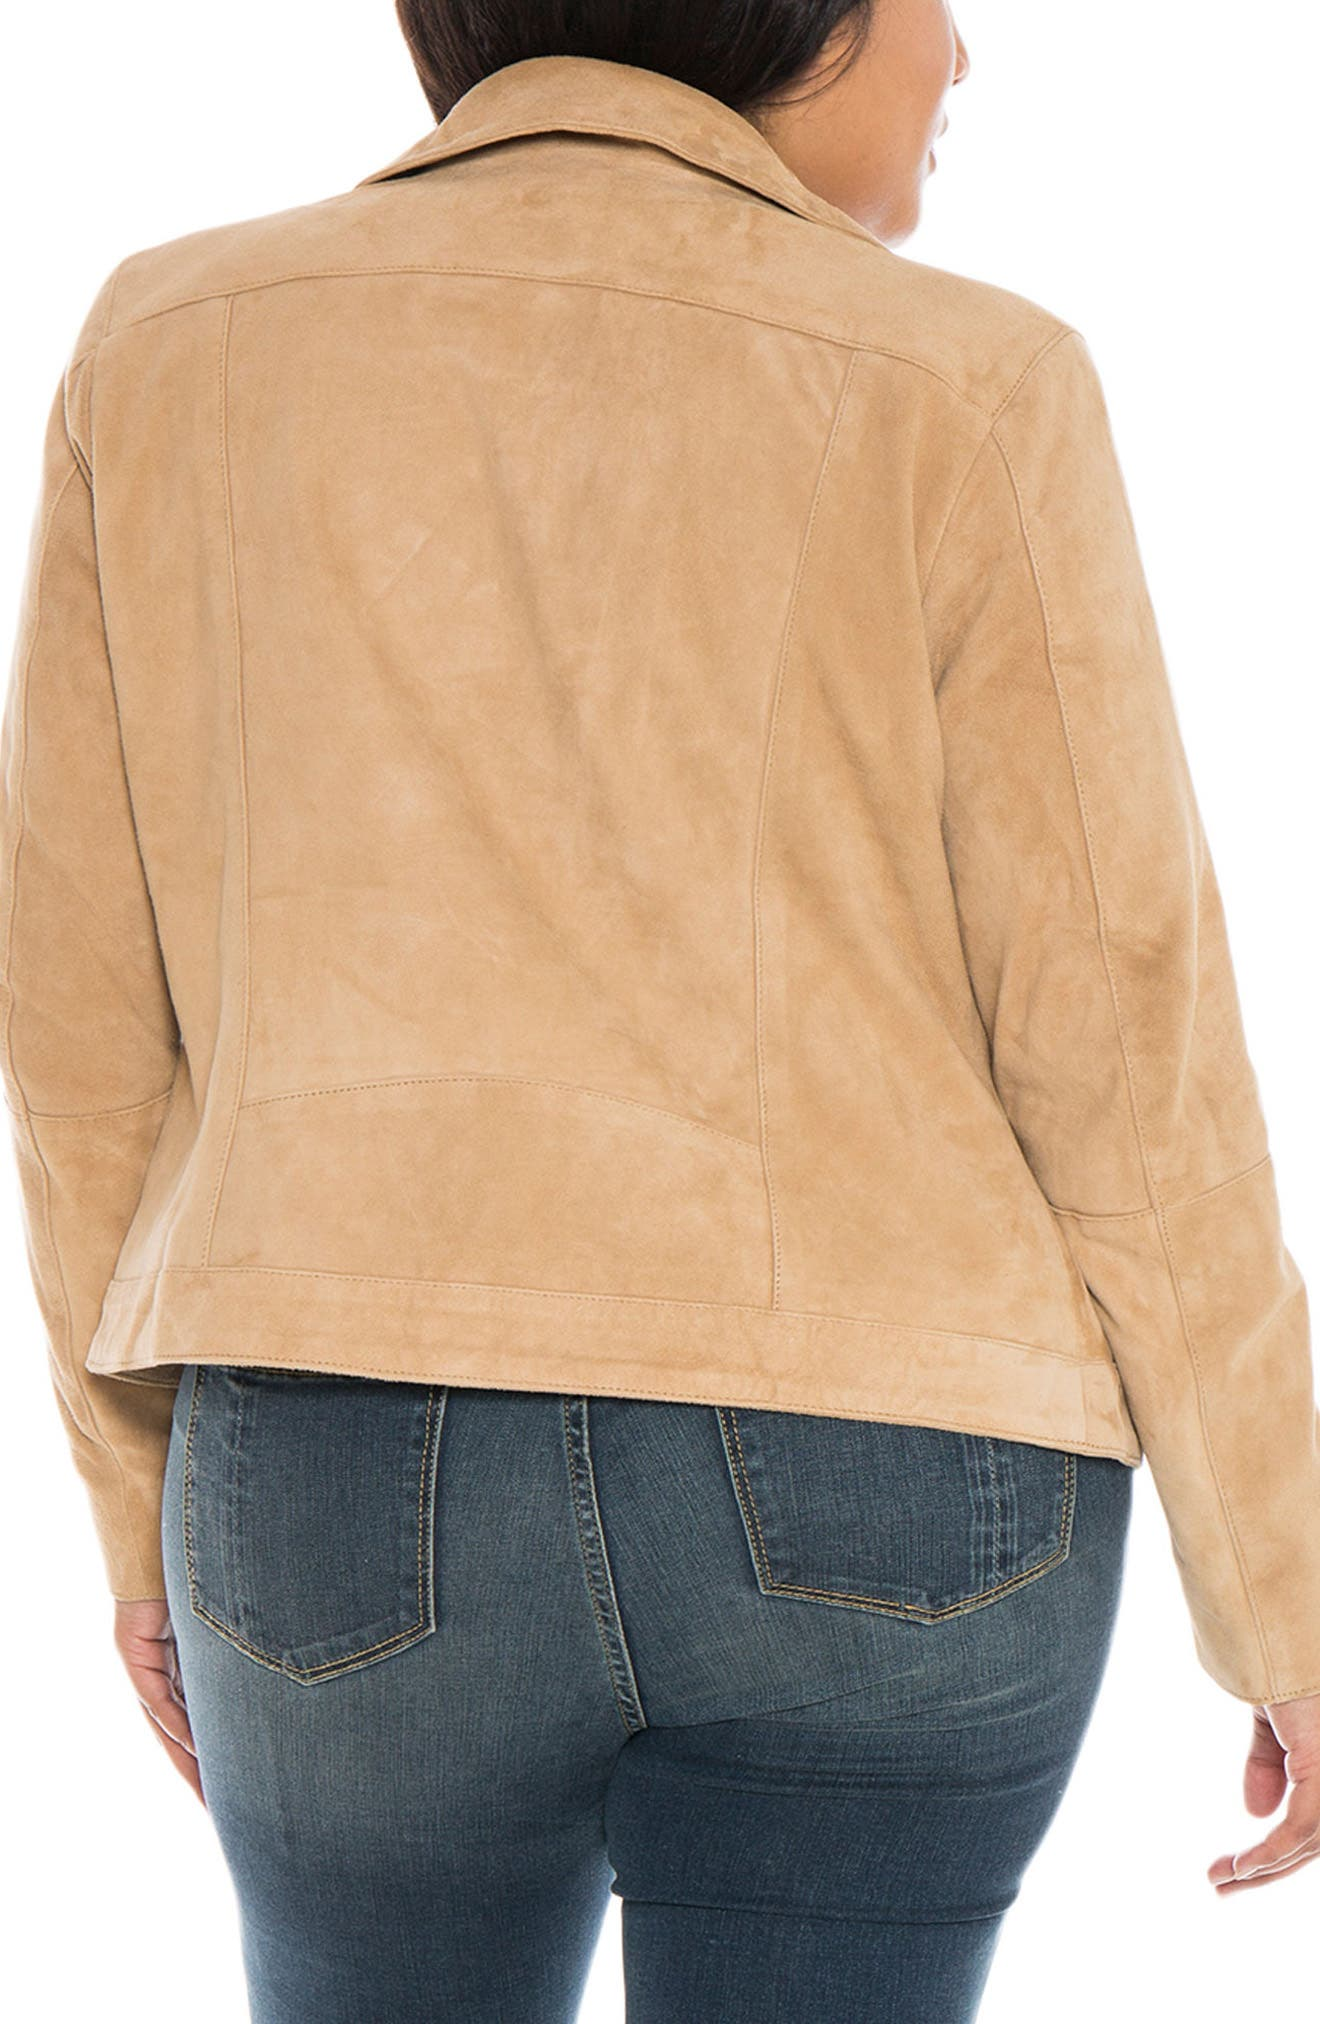 Canyon Suede Jacket,                             Alternate thumbnail 2, color,                             SAND